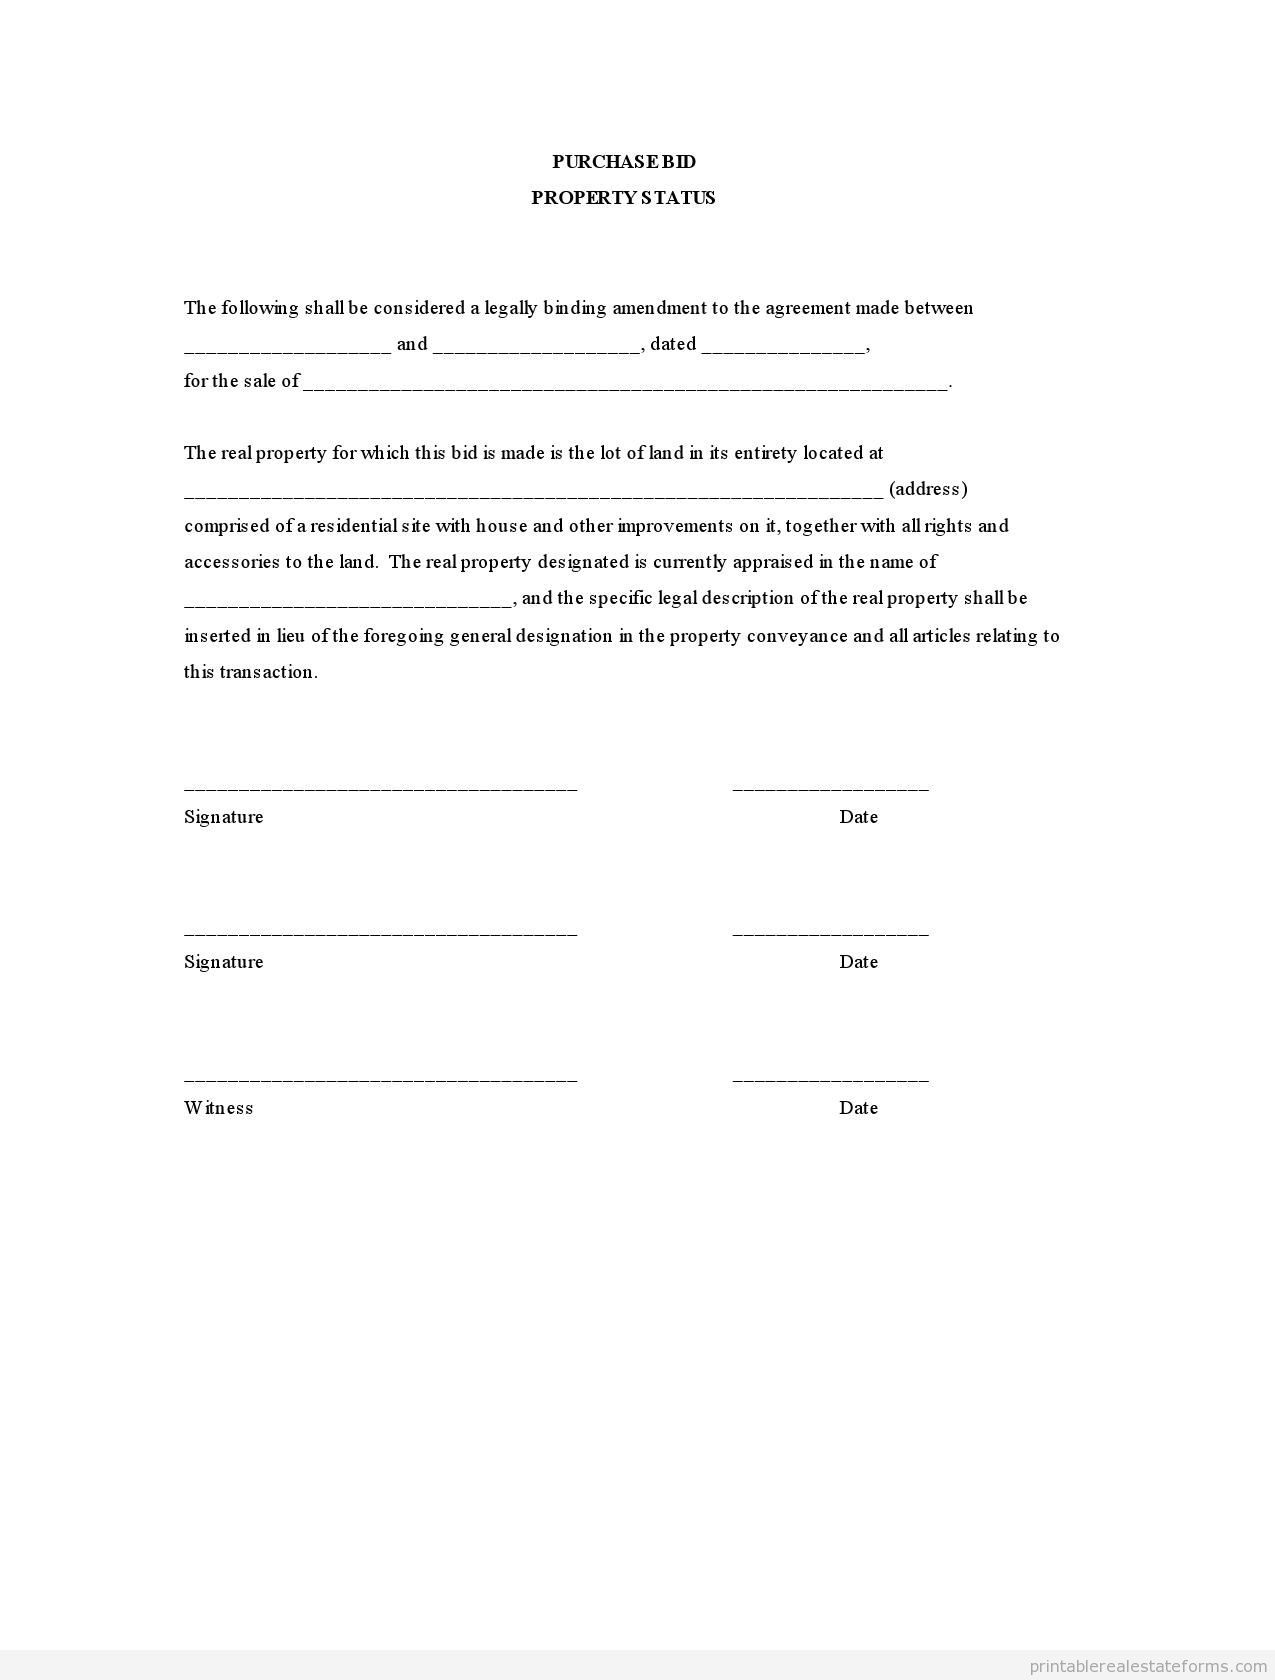 Sample Printable purchase bid property status Form – Real Estate Purchase Agreement Template Free